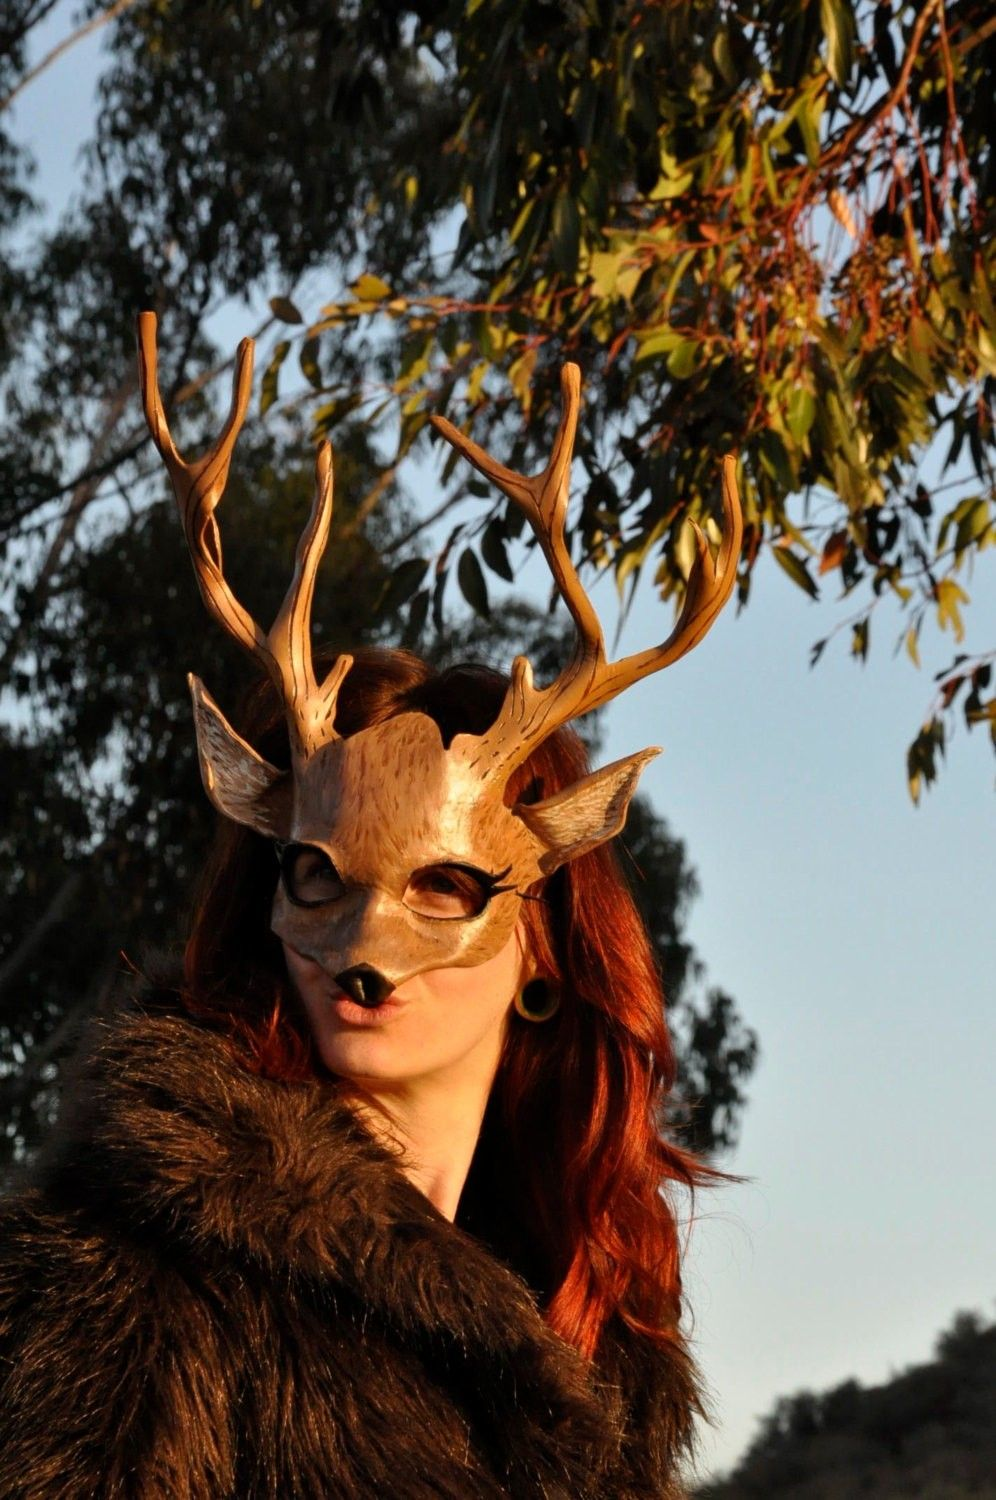 Leather Deer Mask Costume for Masquerade Halloween 2014 #Halloween ...